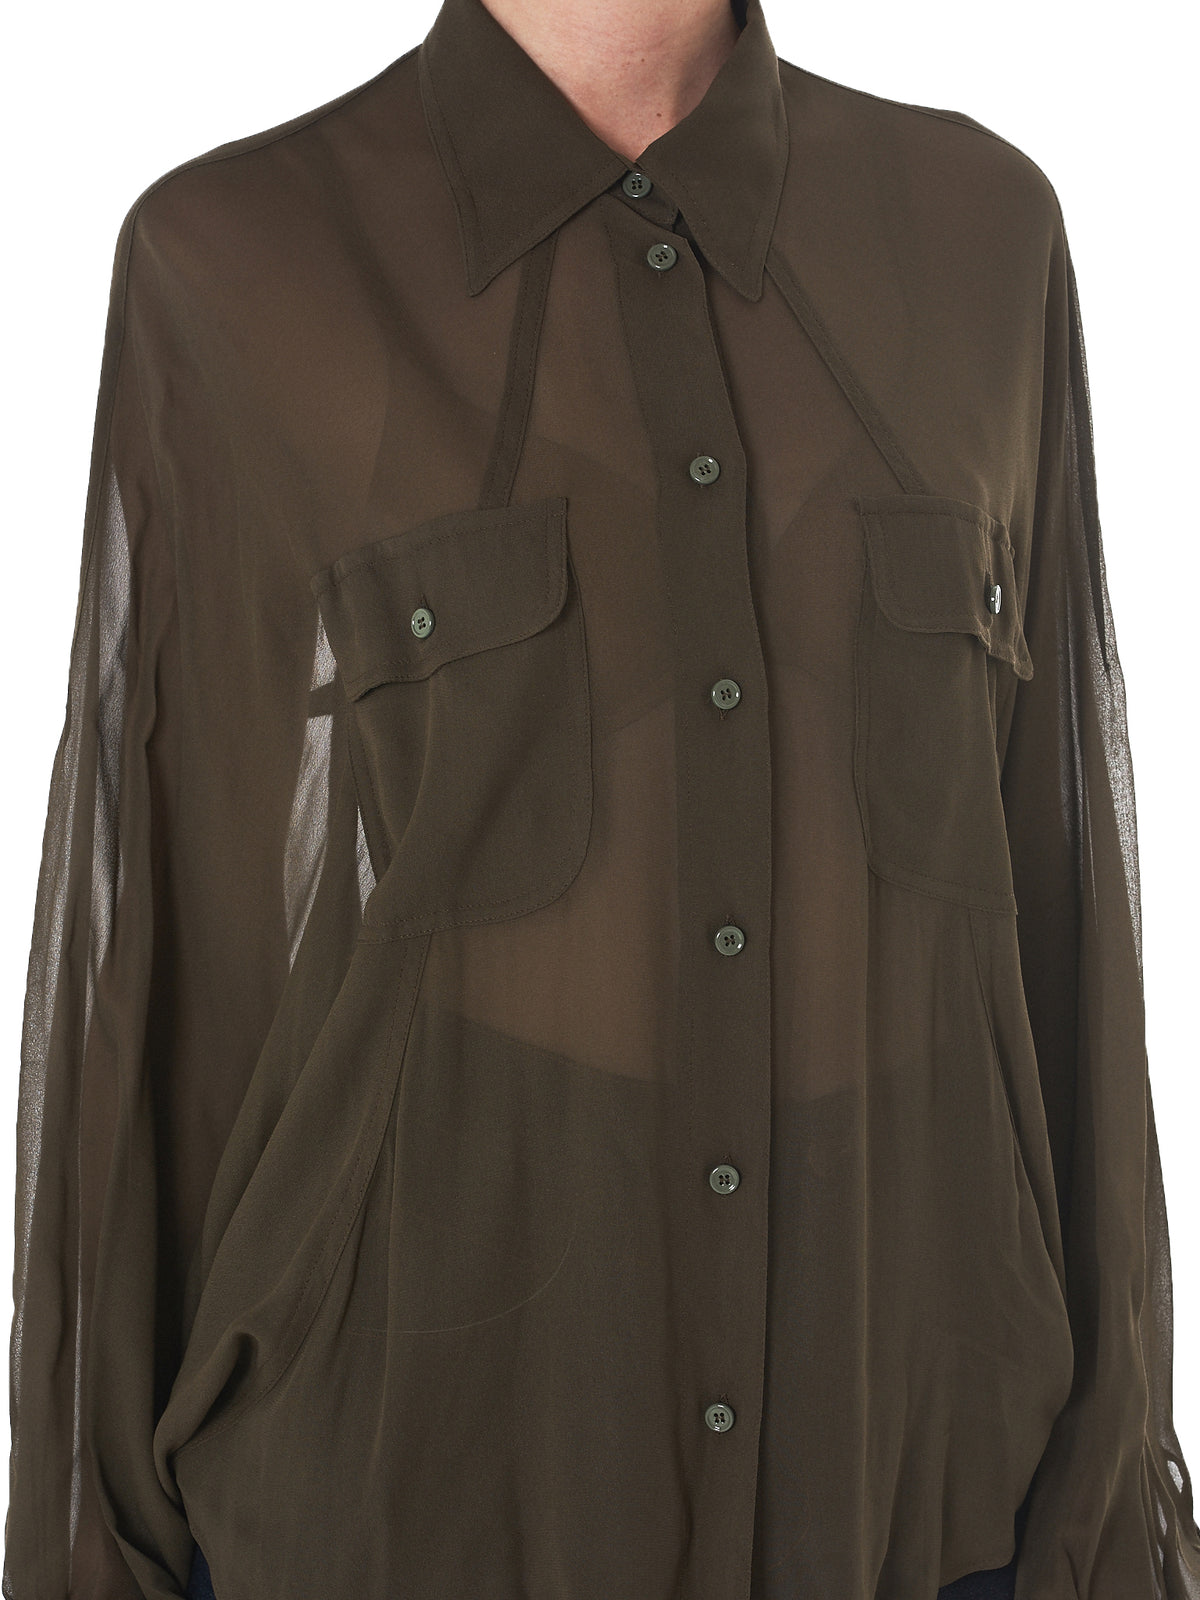 Maison Margiela Sheer Blouse - Hlorenzo Detail 2